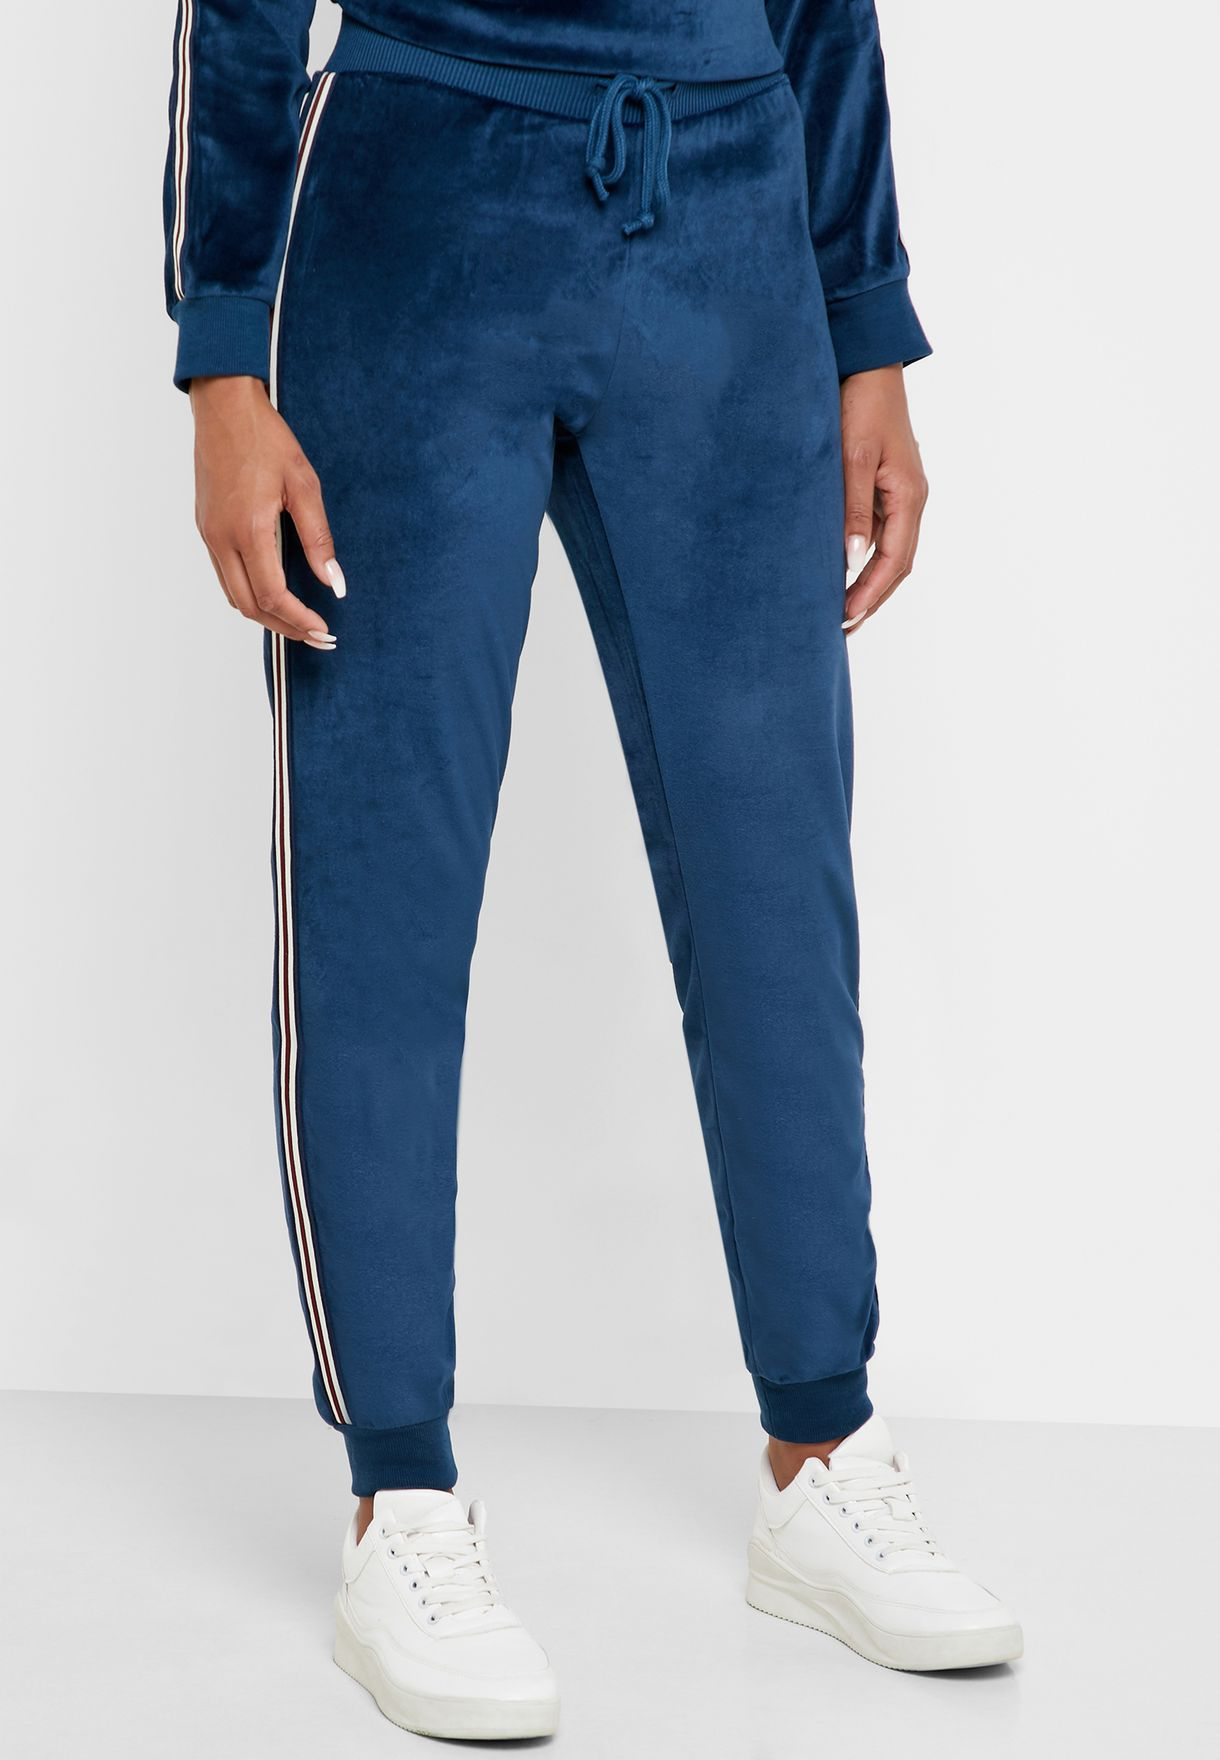 Contrast Side Paneled Jogger Pants Set